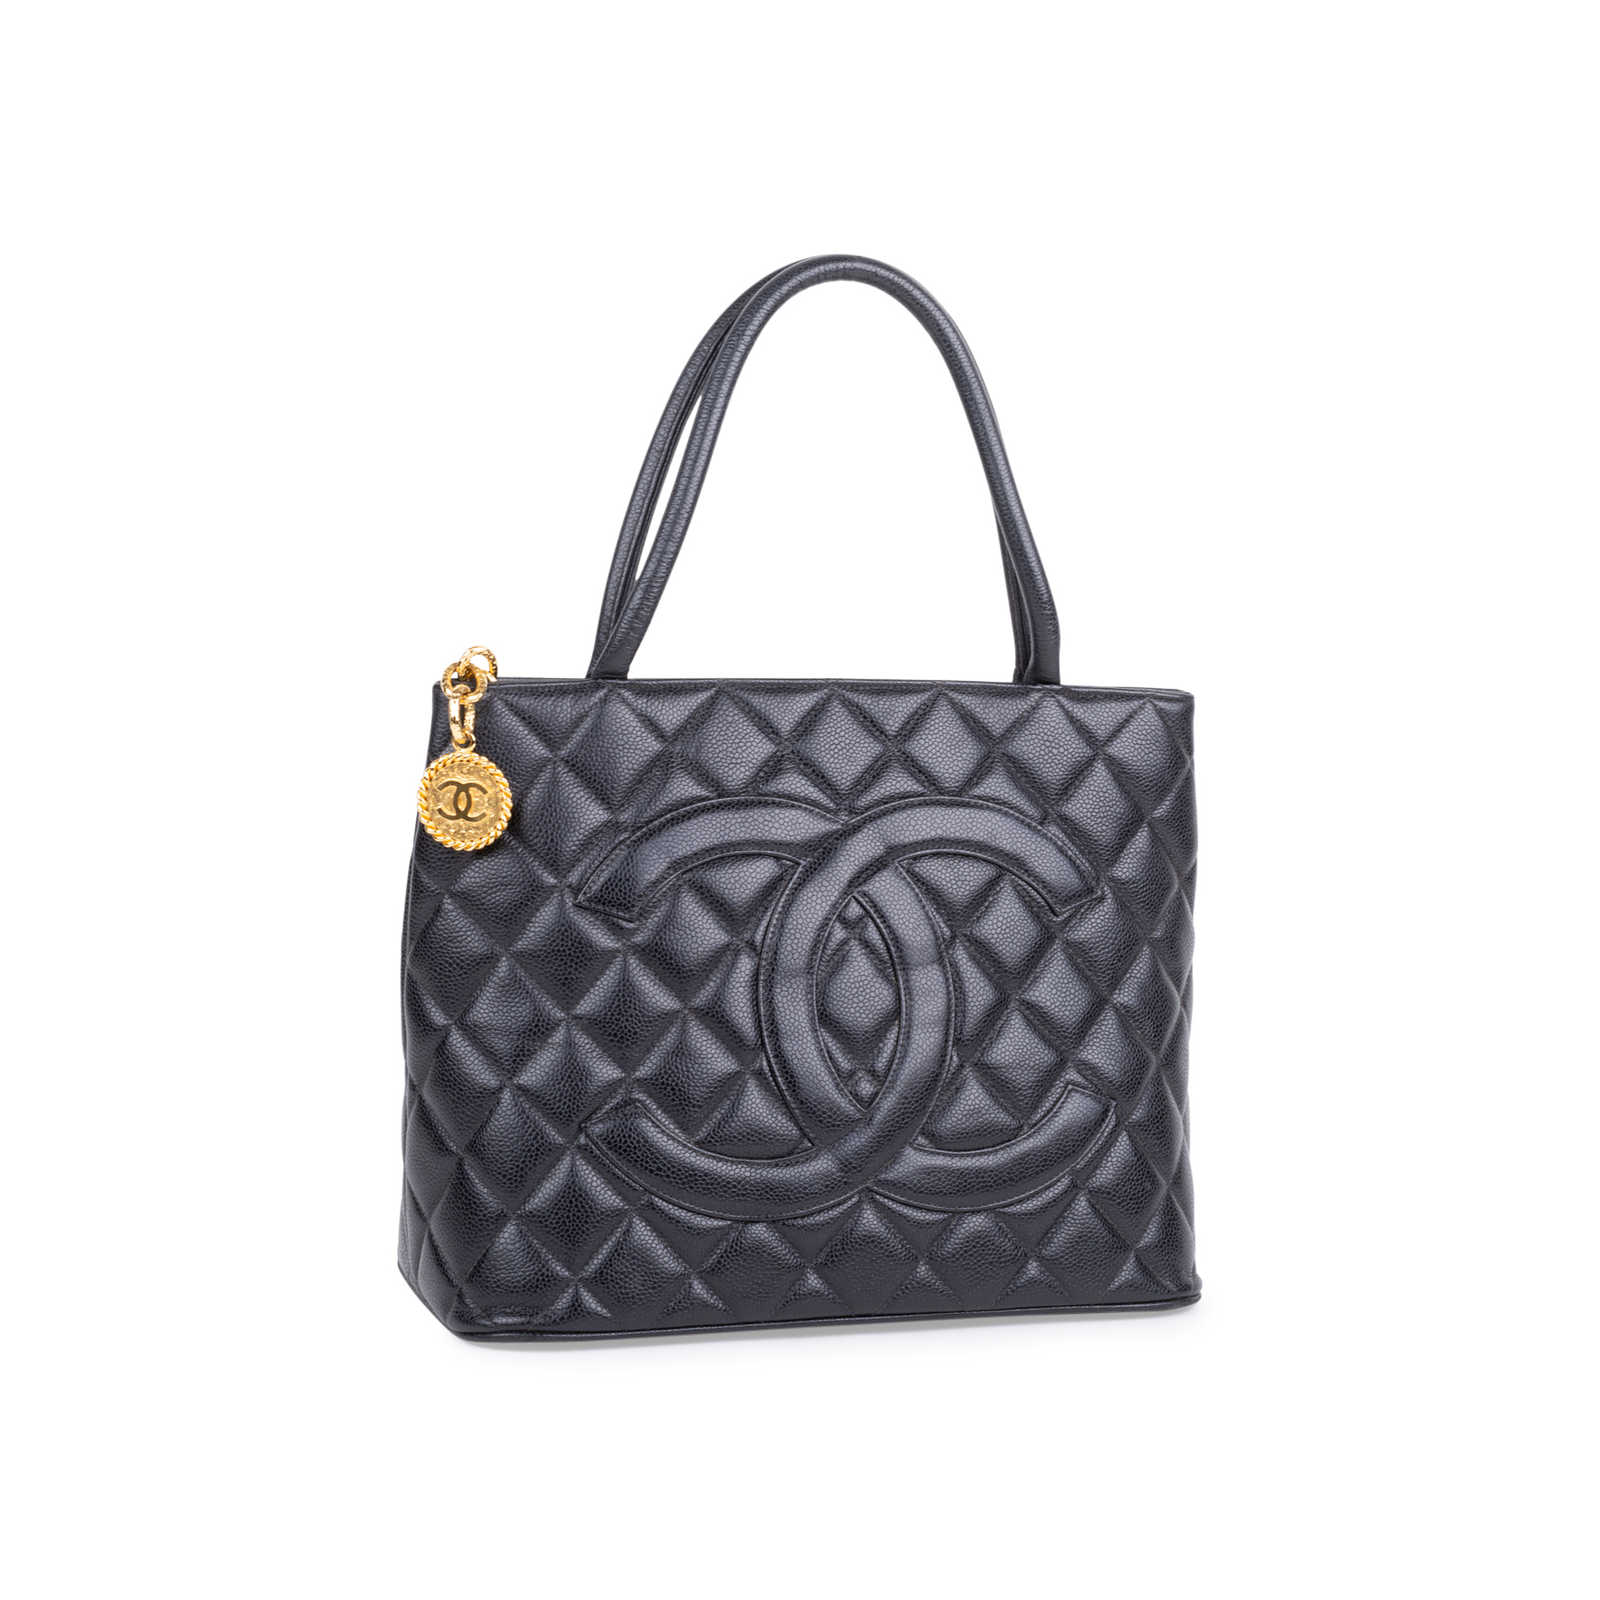 ... Authentic Vintage Chanel Medallion Tote Bag (PSS-606-00011) - Thumbnail  1 ... 8743398a2c6ba